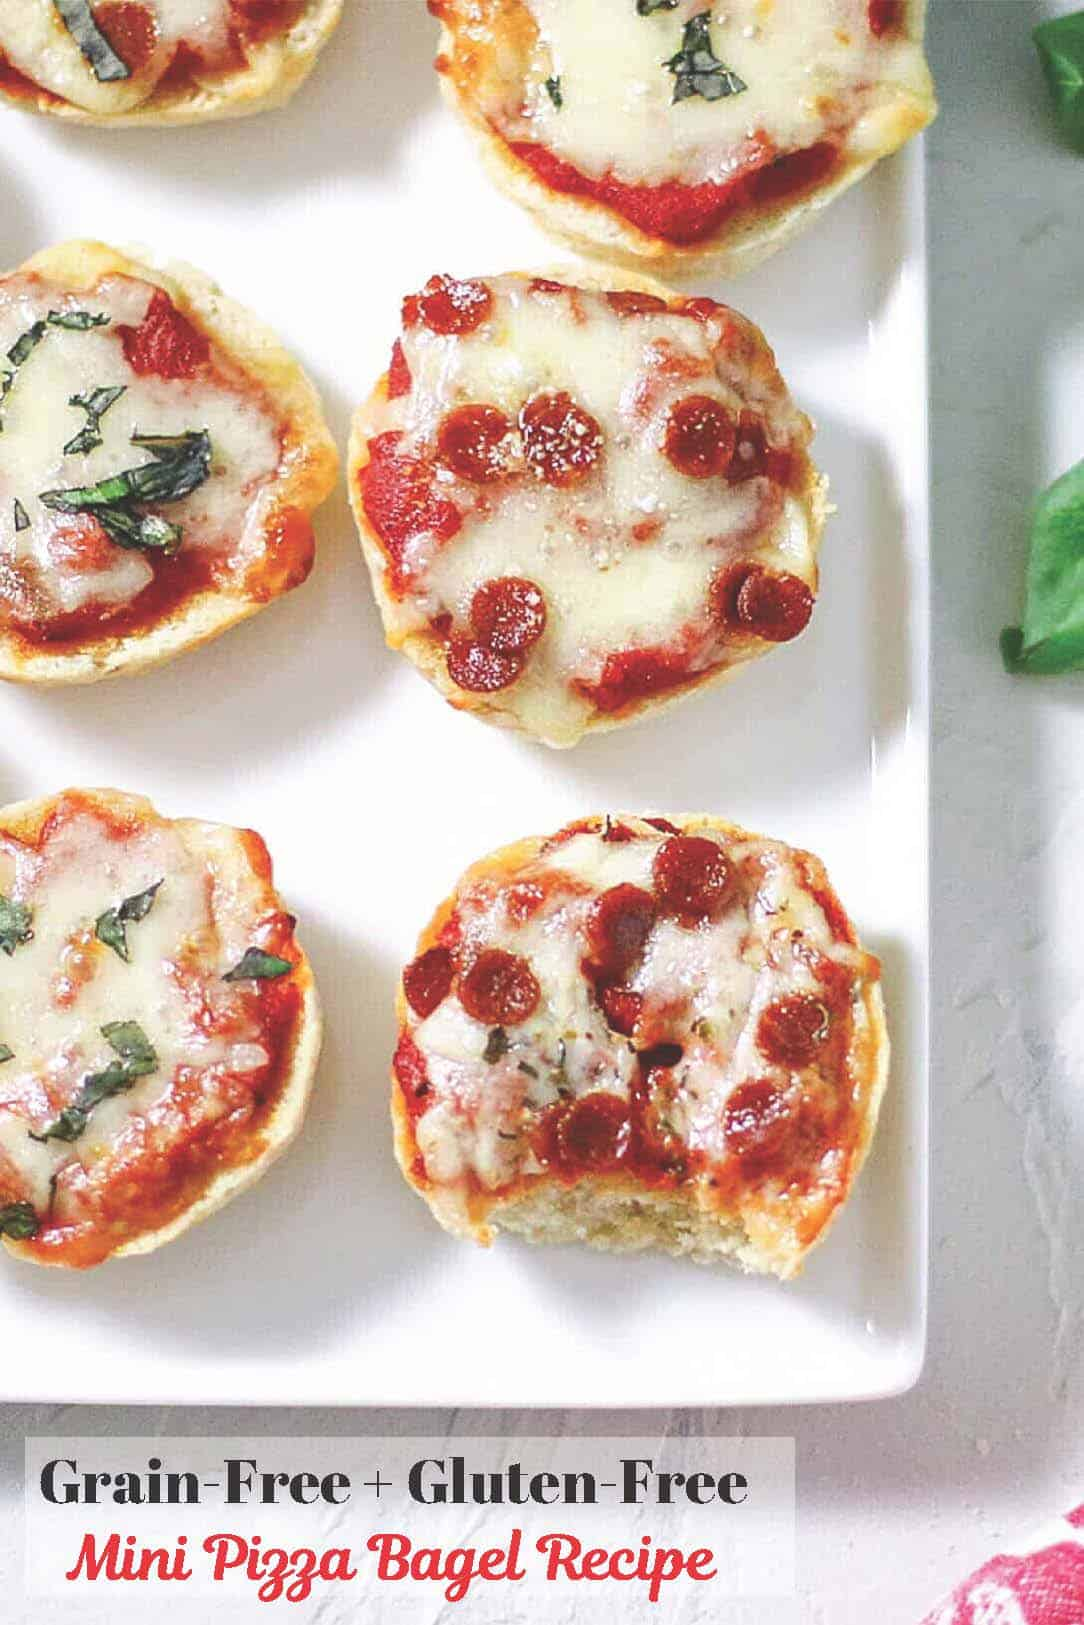 Grainless mini pizza bagels